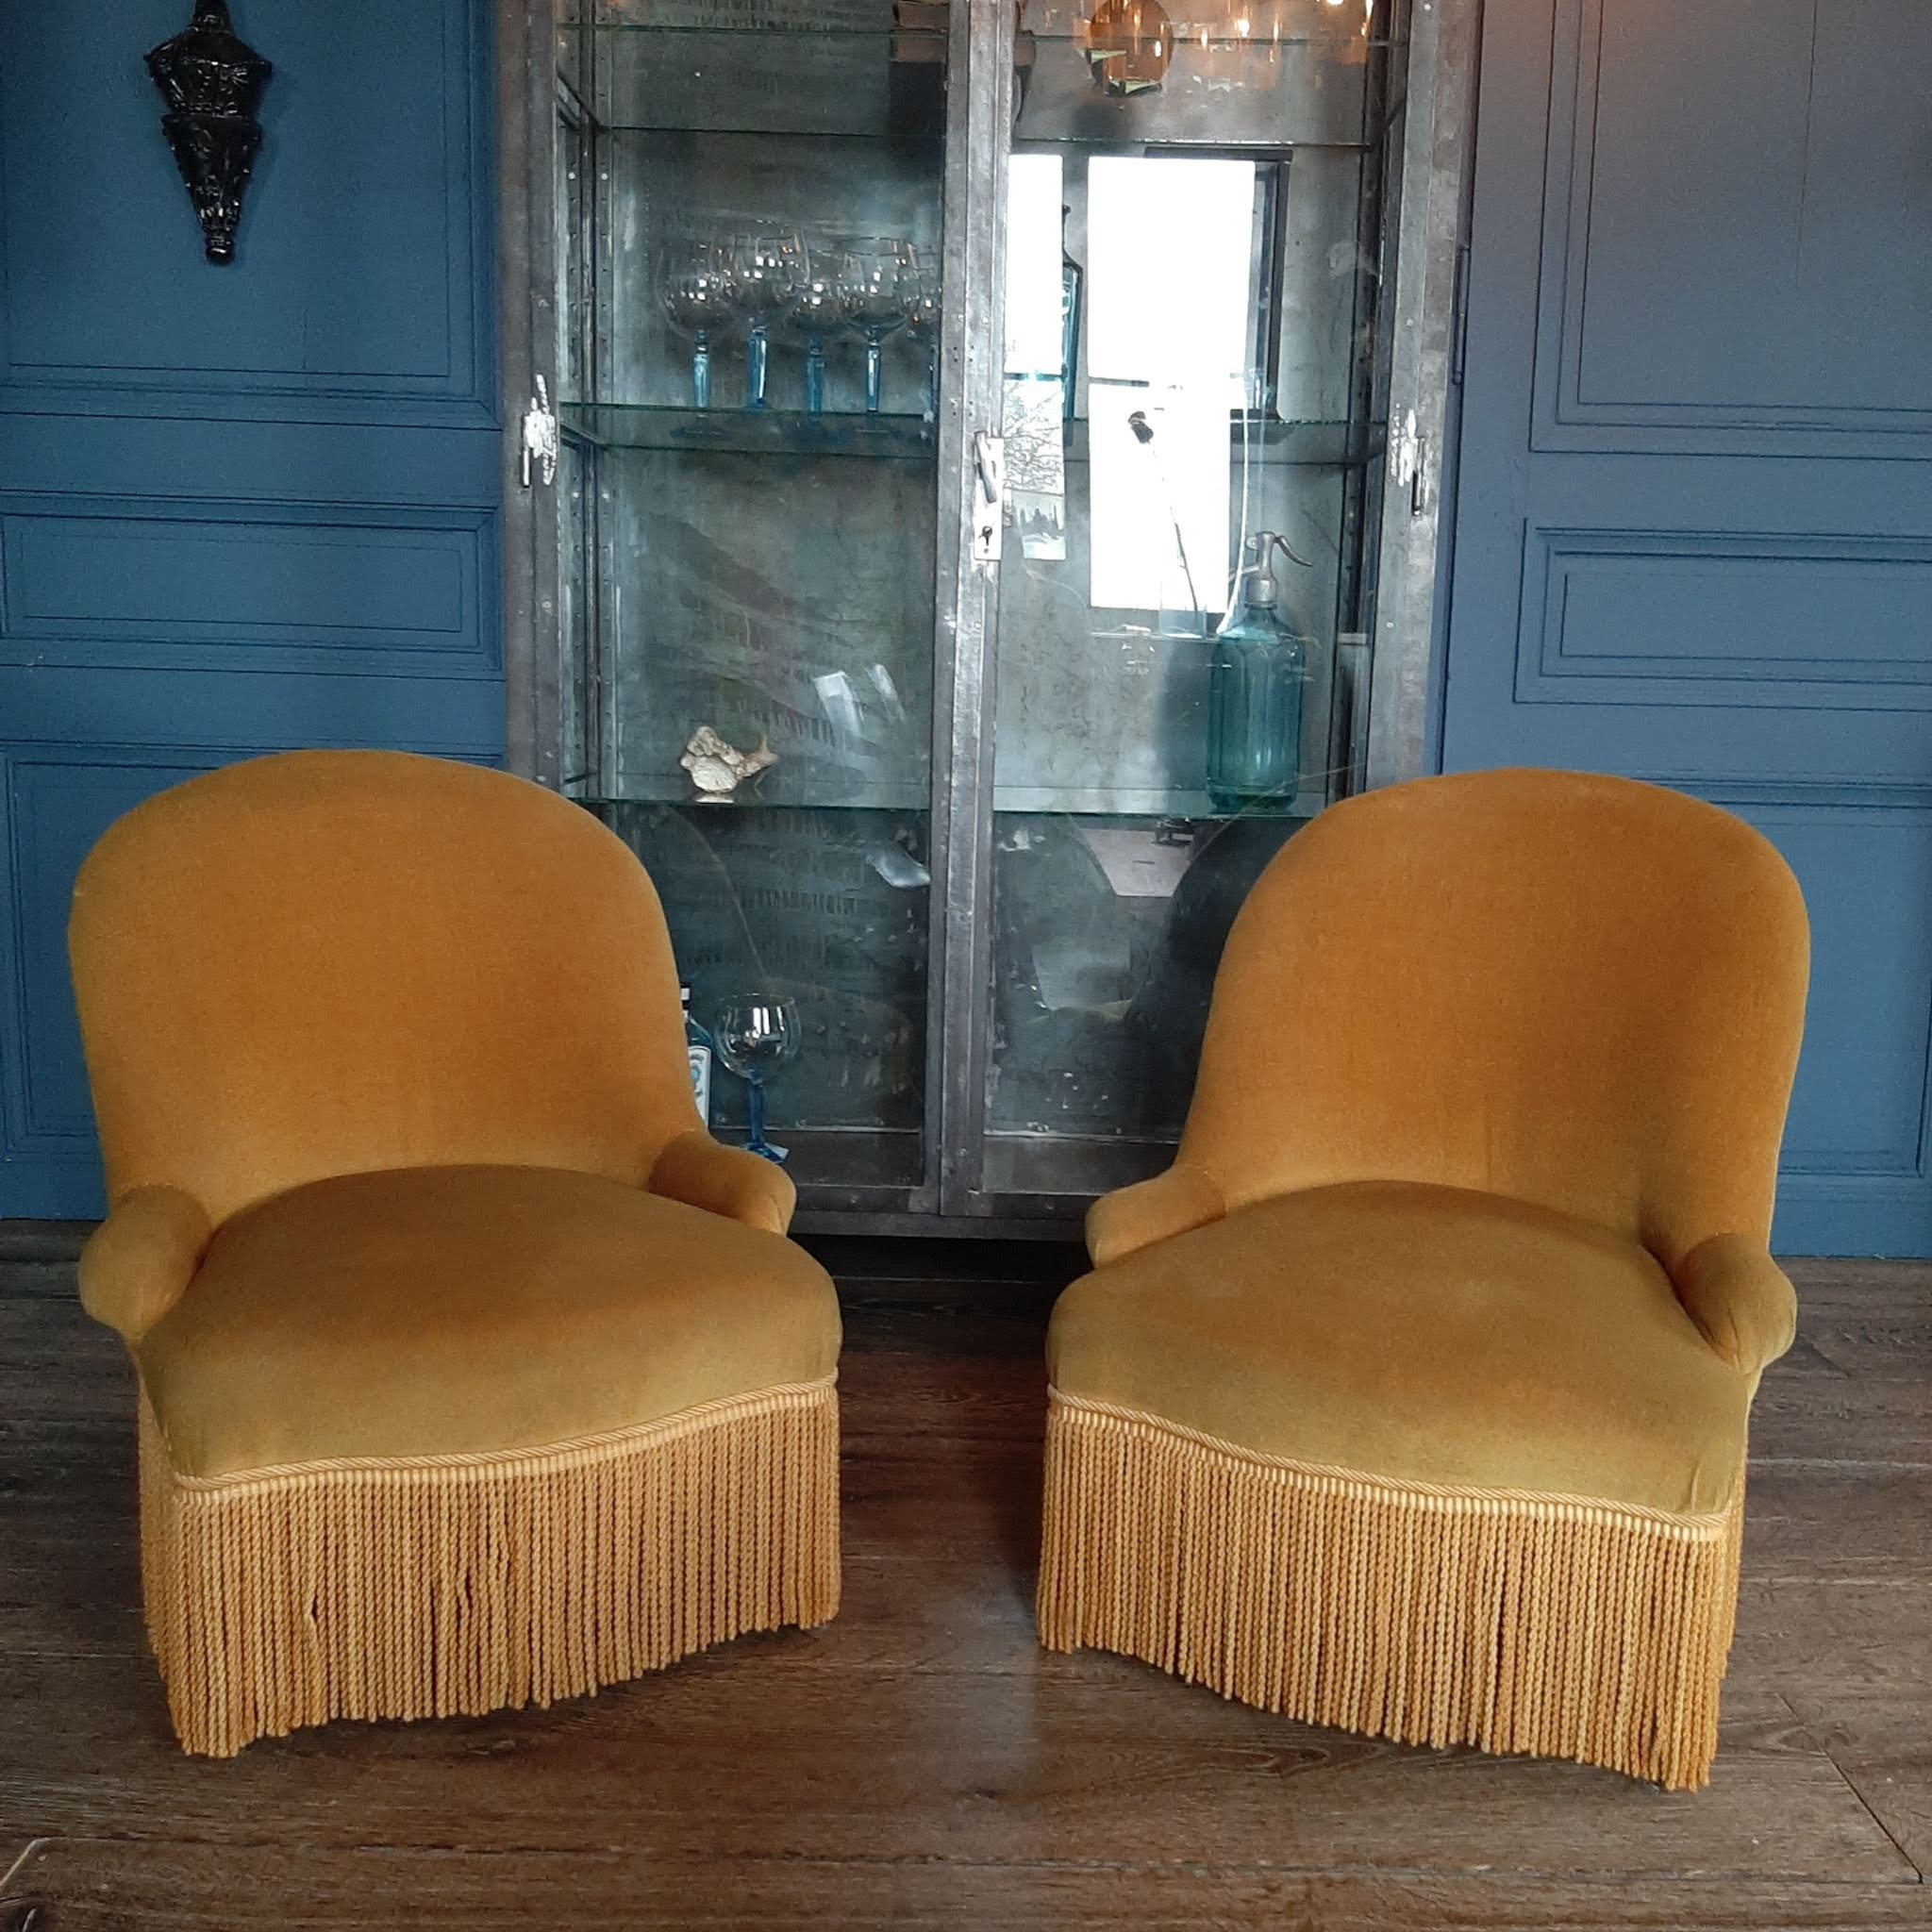 A pair of yellow velvet chairs with fringes